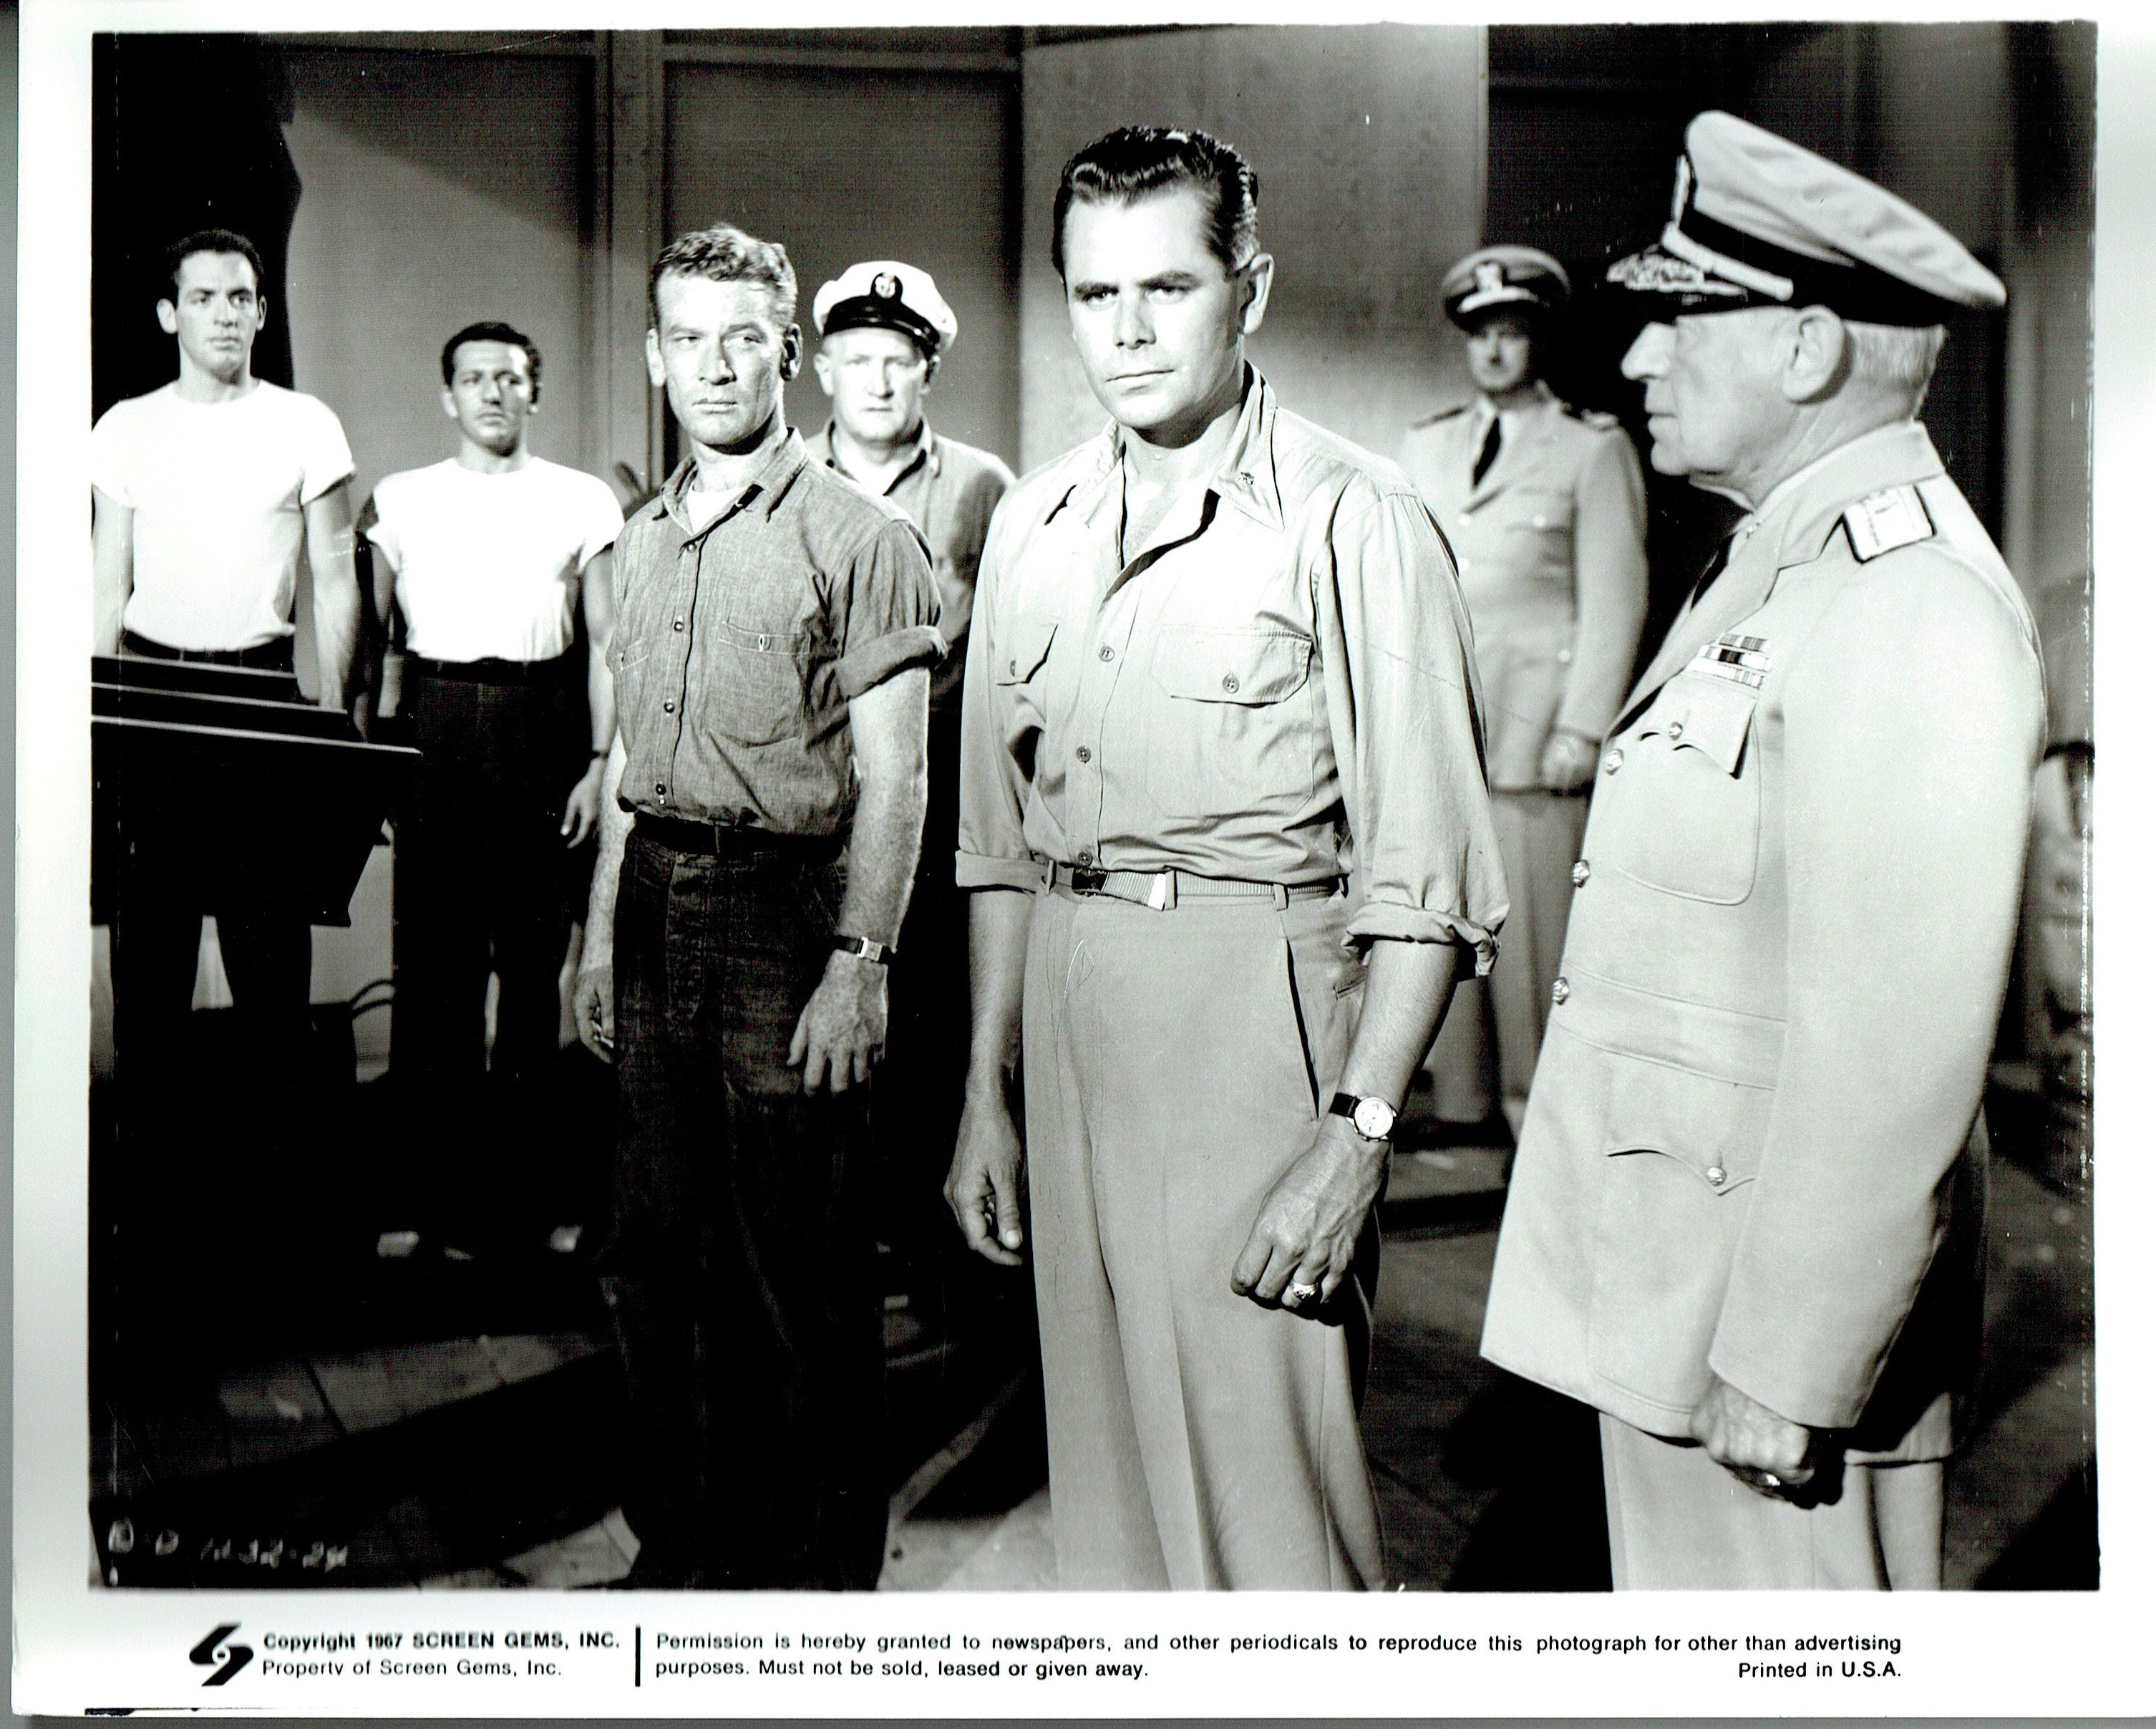 Glenn Ford, Jerry Paris, Joe Sawyer, and Kenneth Tobey in The Flying Missile (1950)